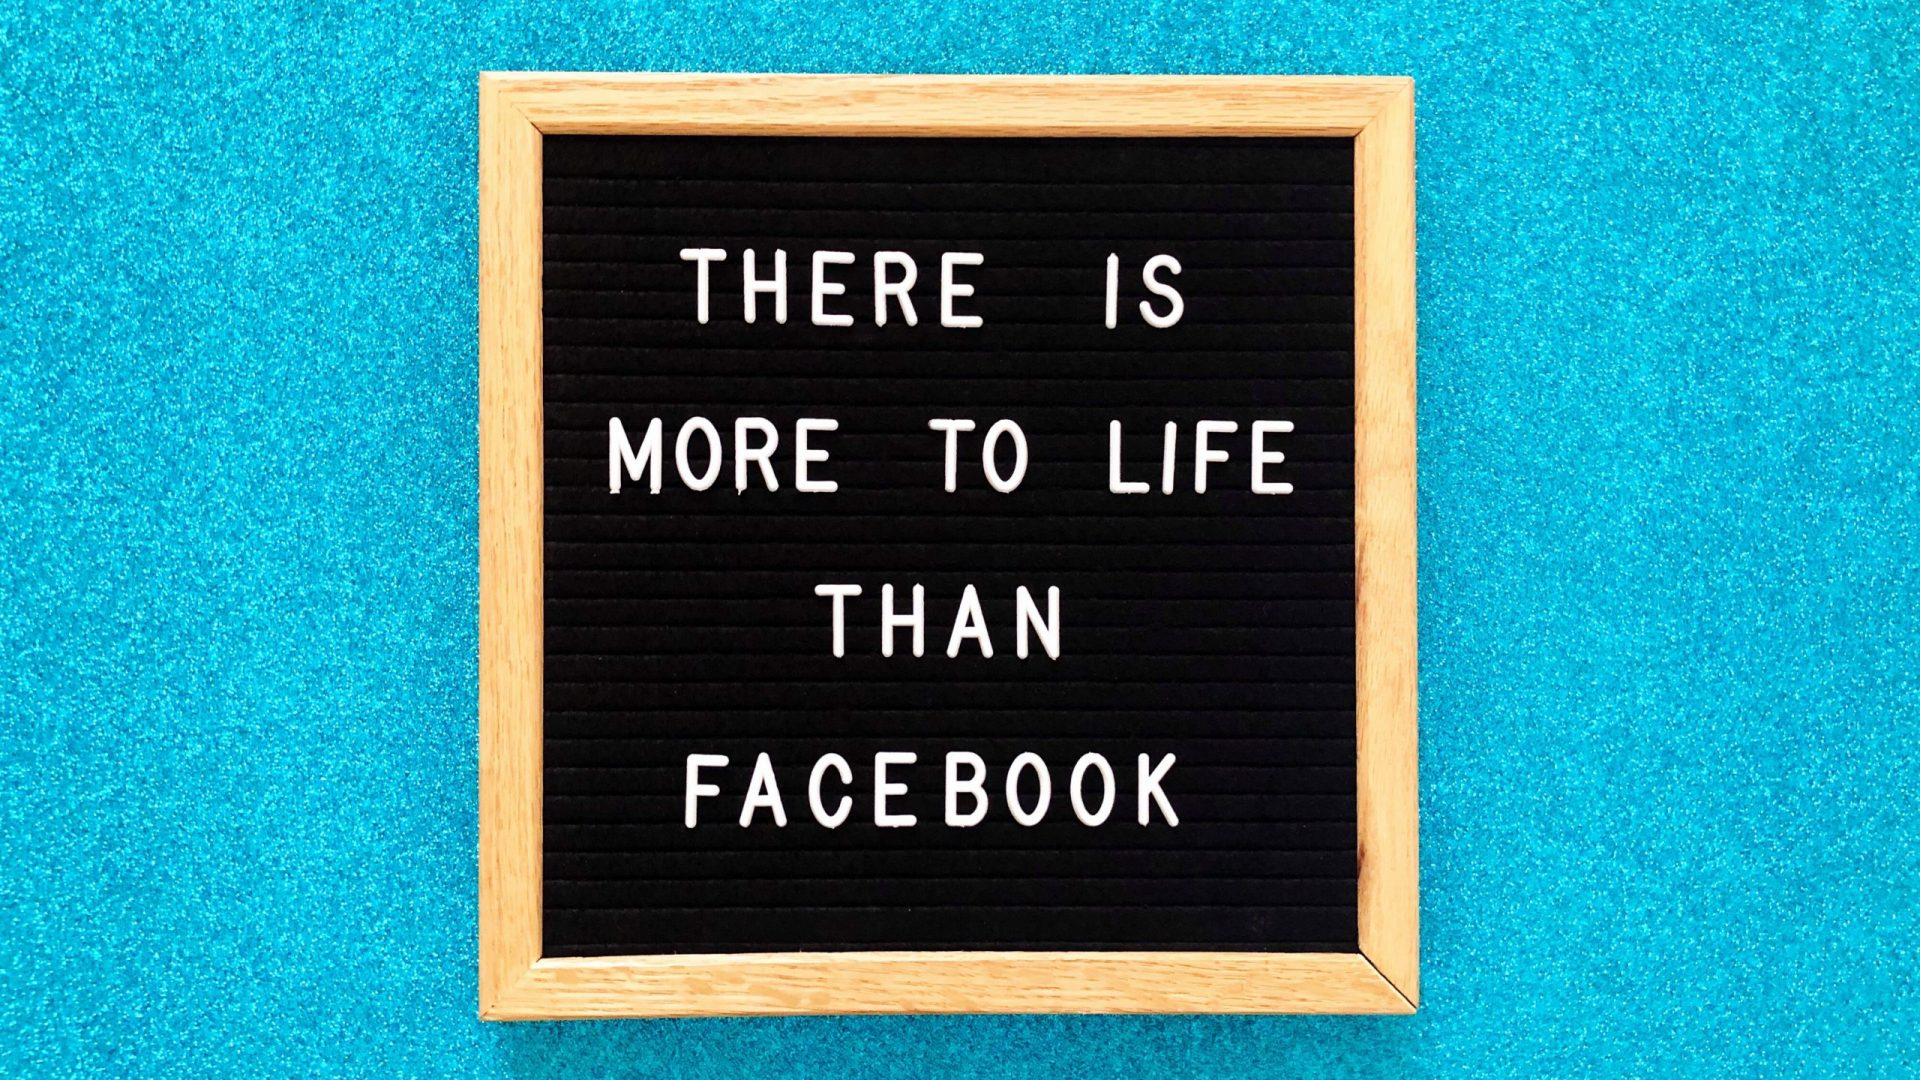 there-is-more-to-life-than-facebook-6E7WP3M